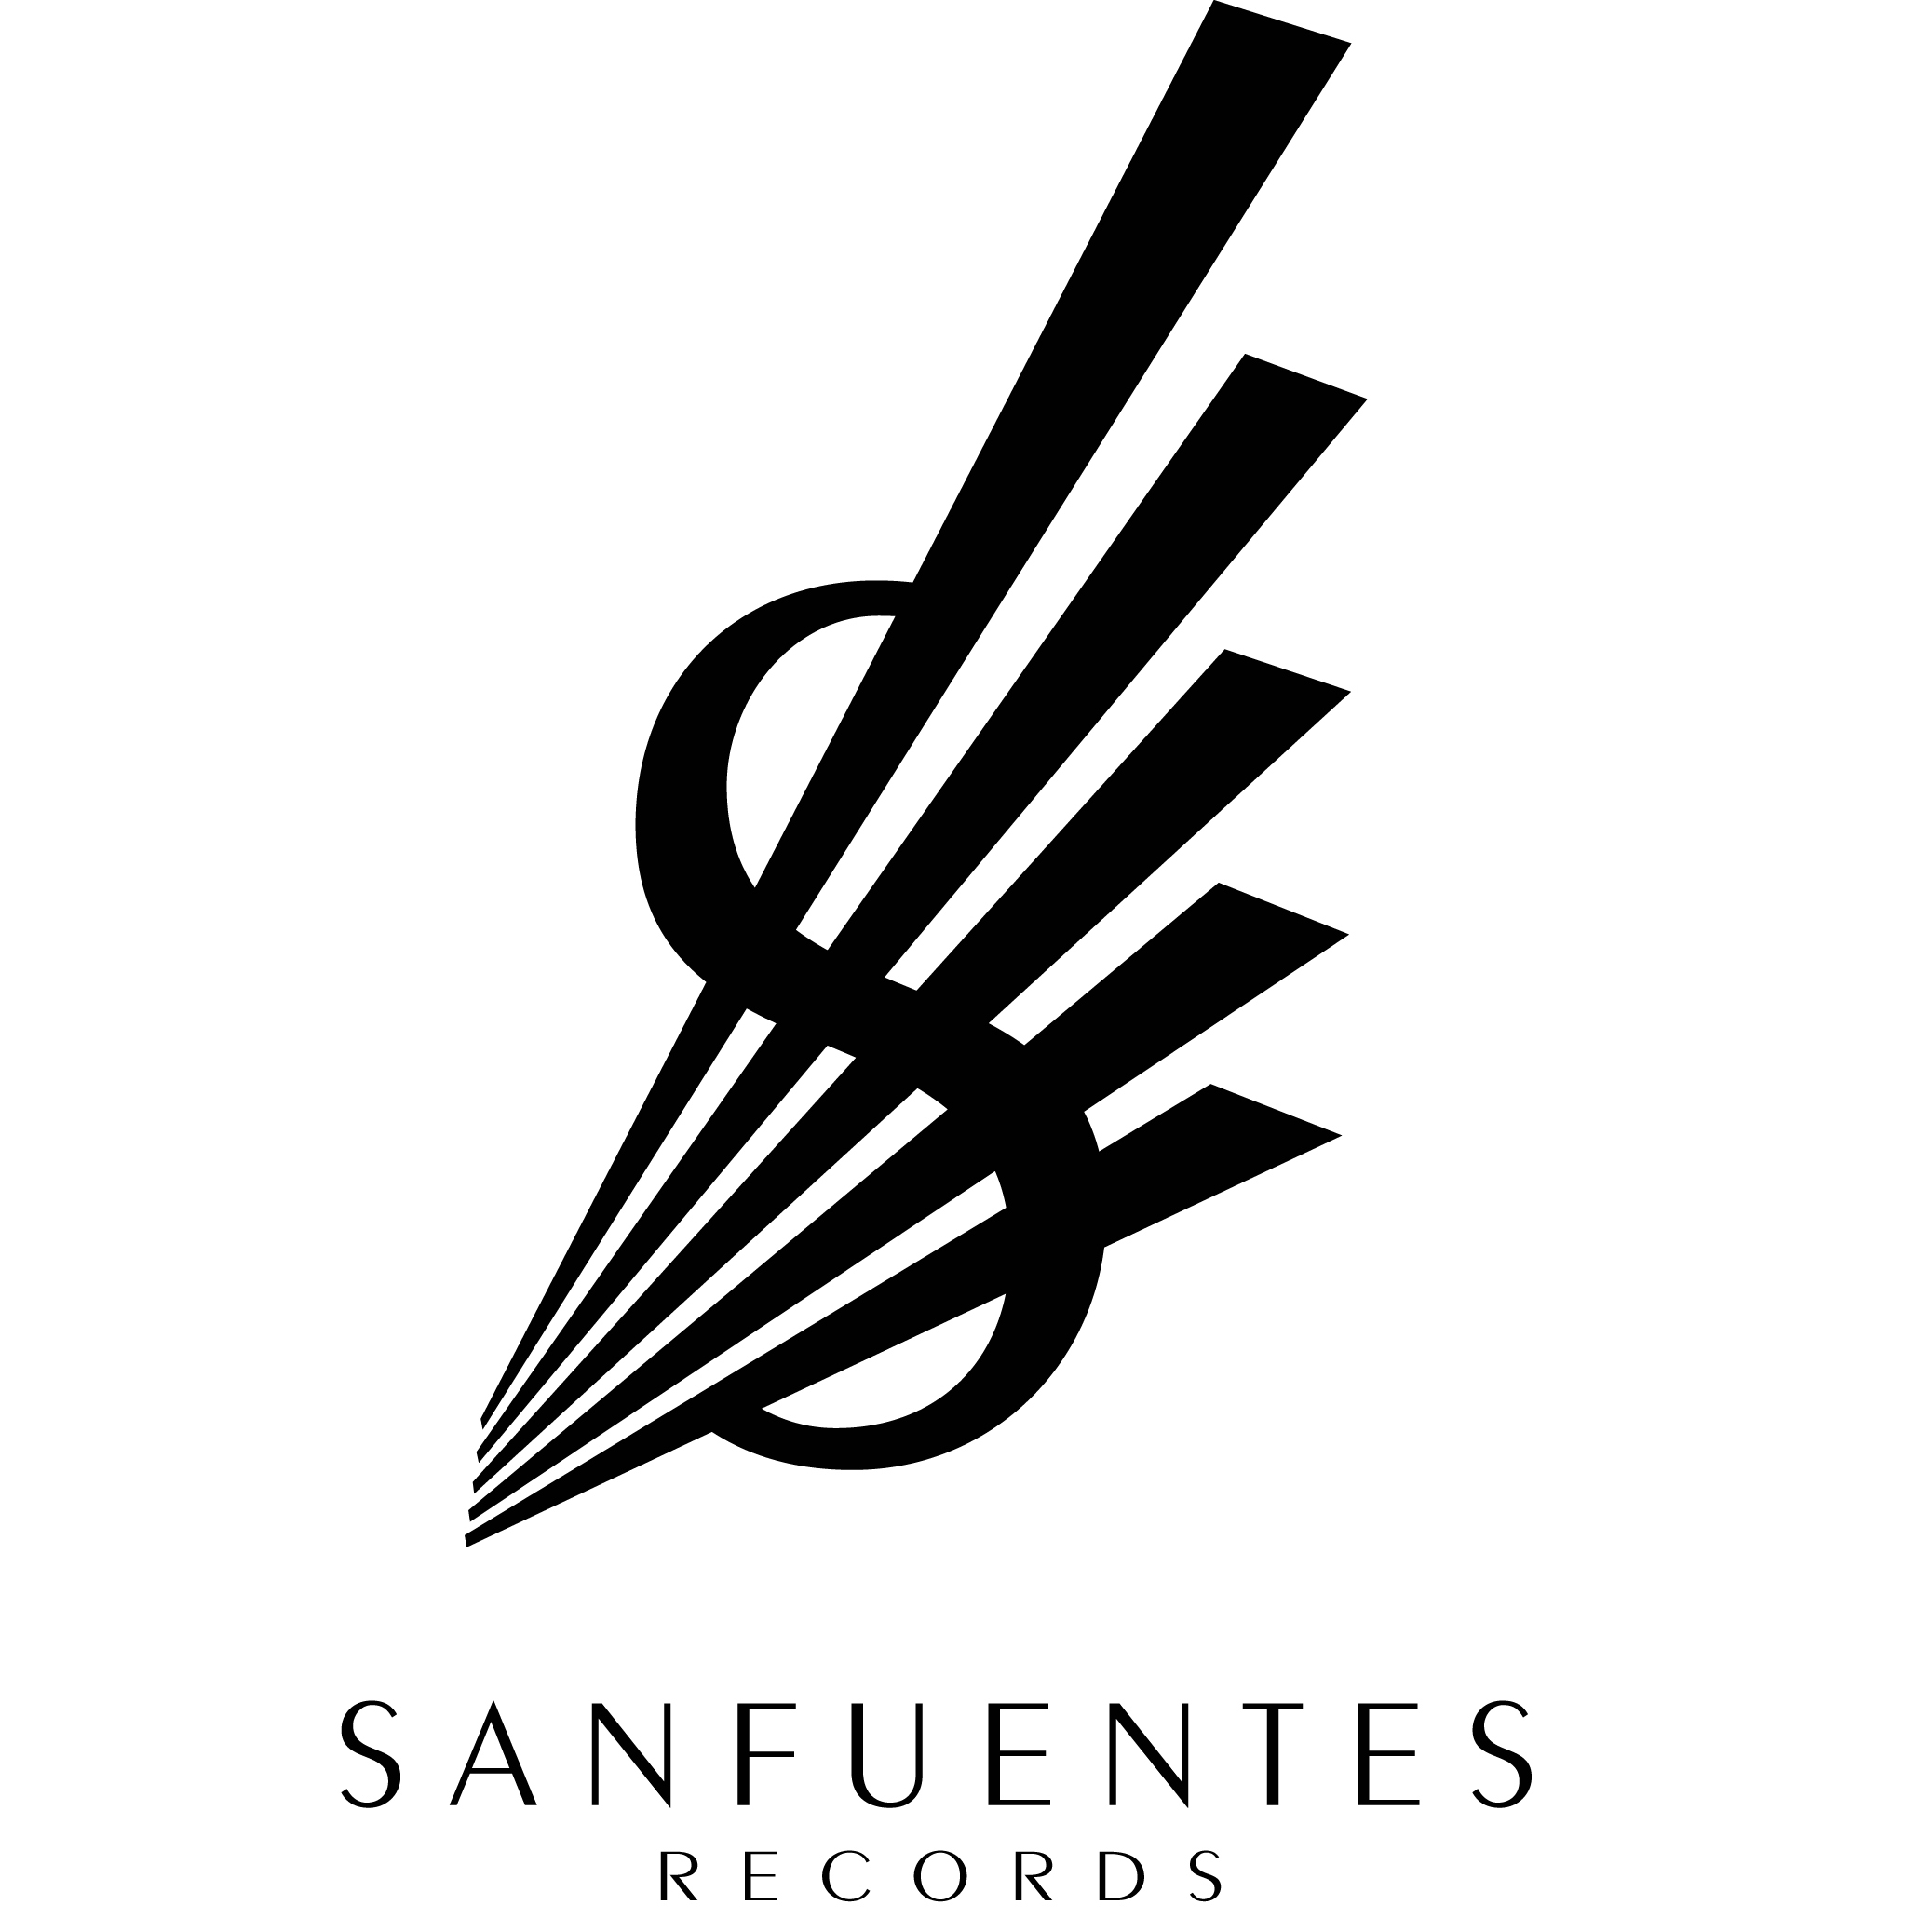 Sanfuentes Records